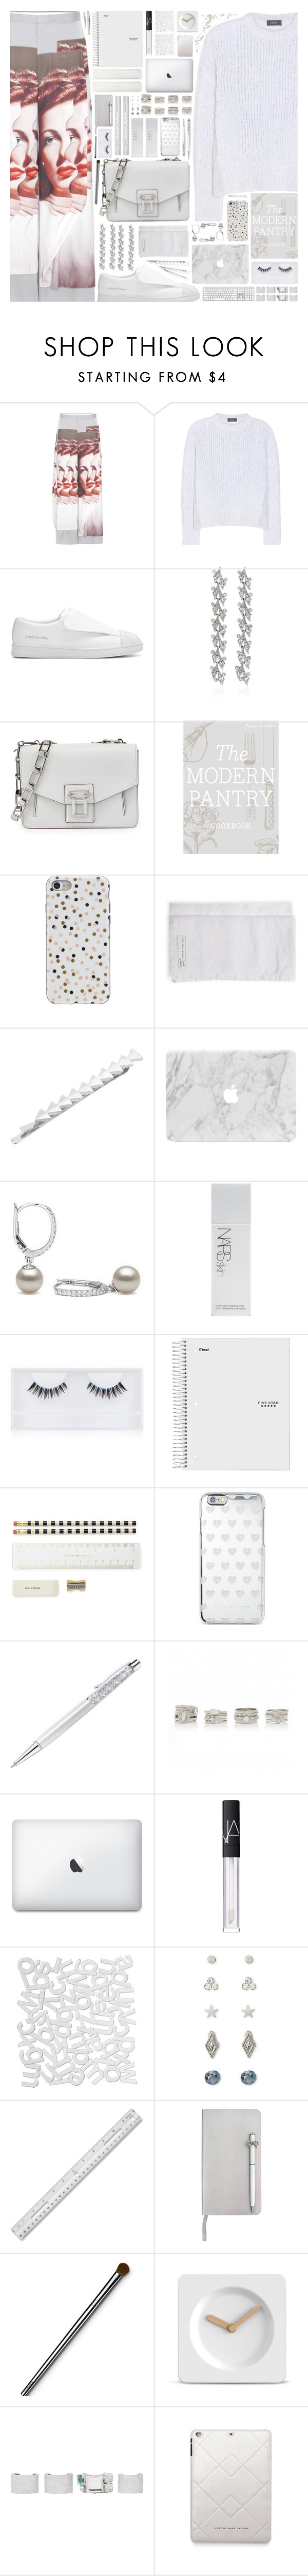 """""""🎧Change Is Never A Waste Of Time"""" by arierrefatir ❤ liked on Polyvore featuring Undercover, Acne Studios, Ben-Amun, Proenza Schouler, Hansen, Agent 18, NARS Cosmetics, Georgie Beauty, Kate Spade and Michael Kors"""